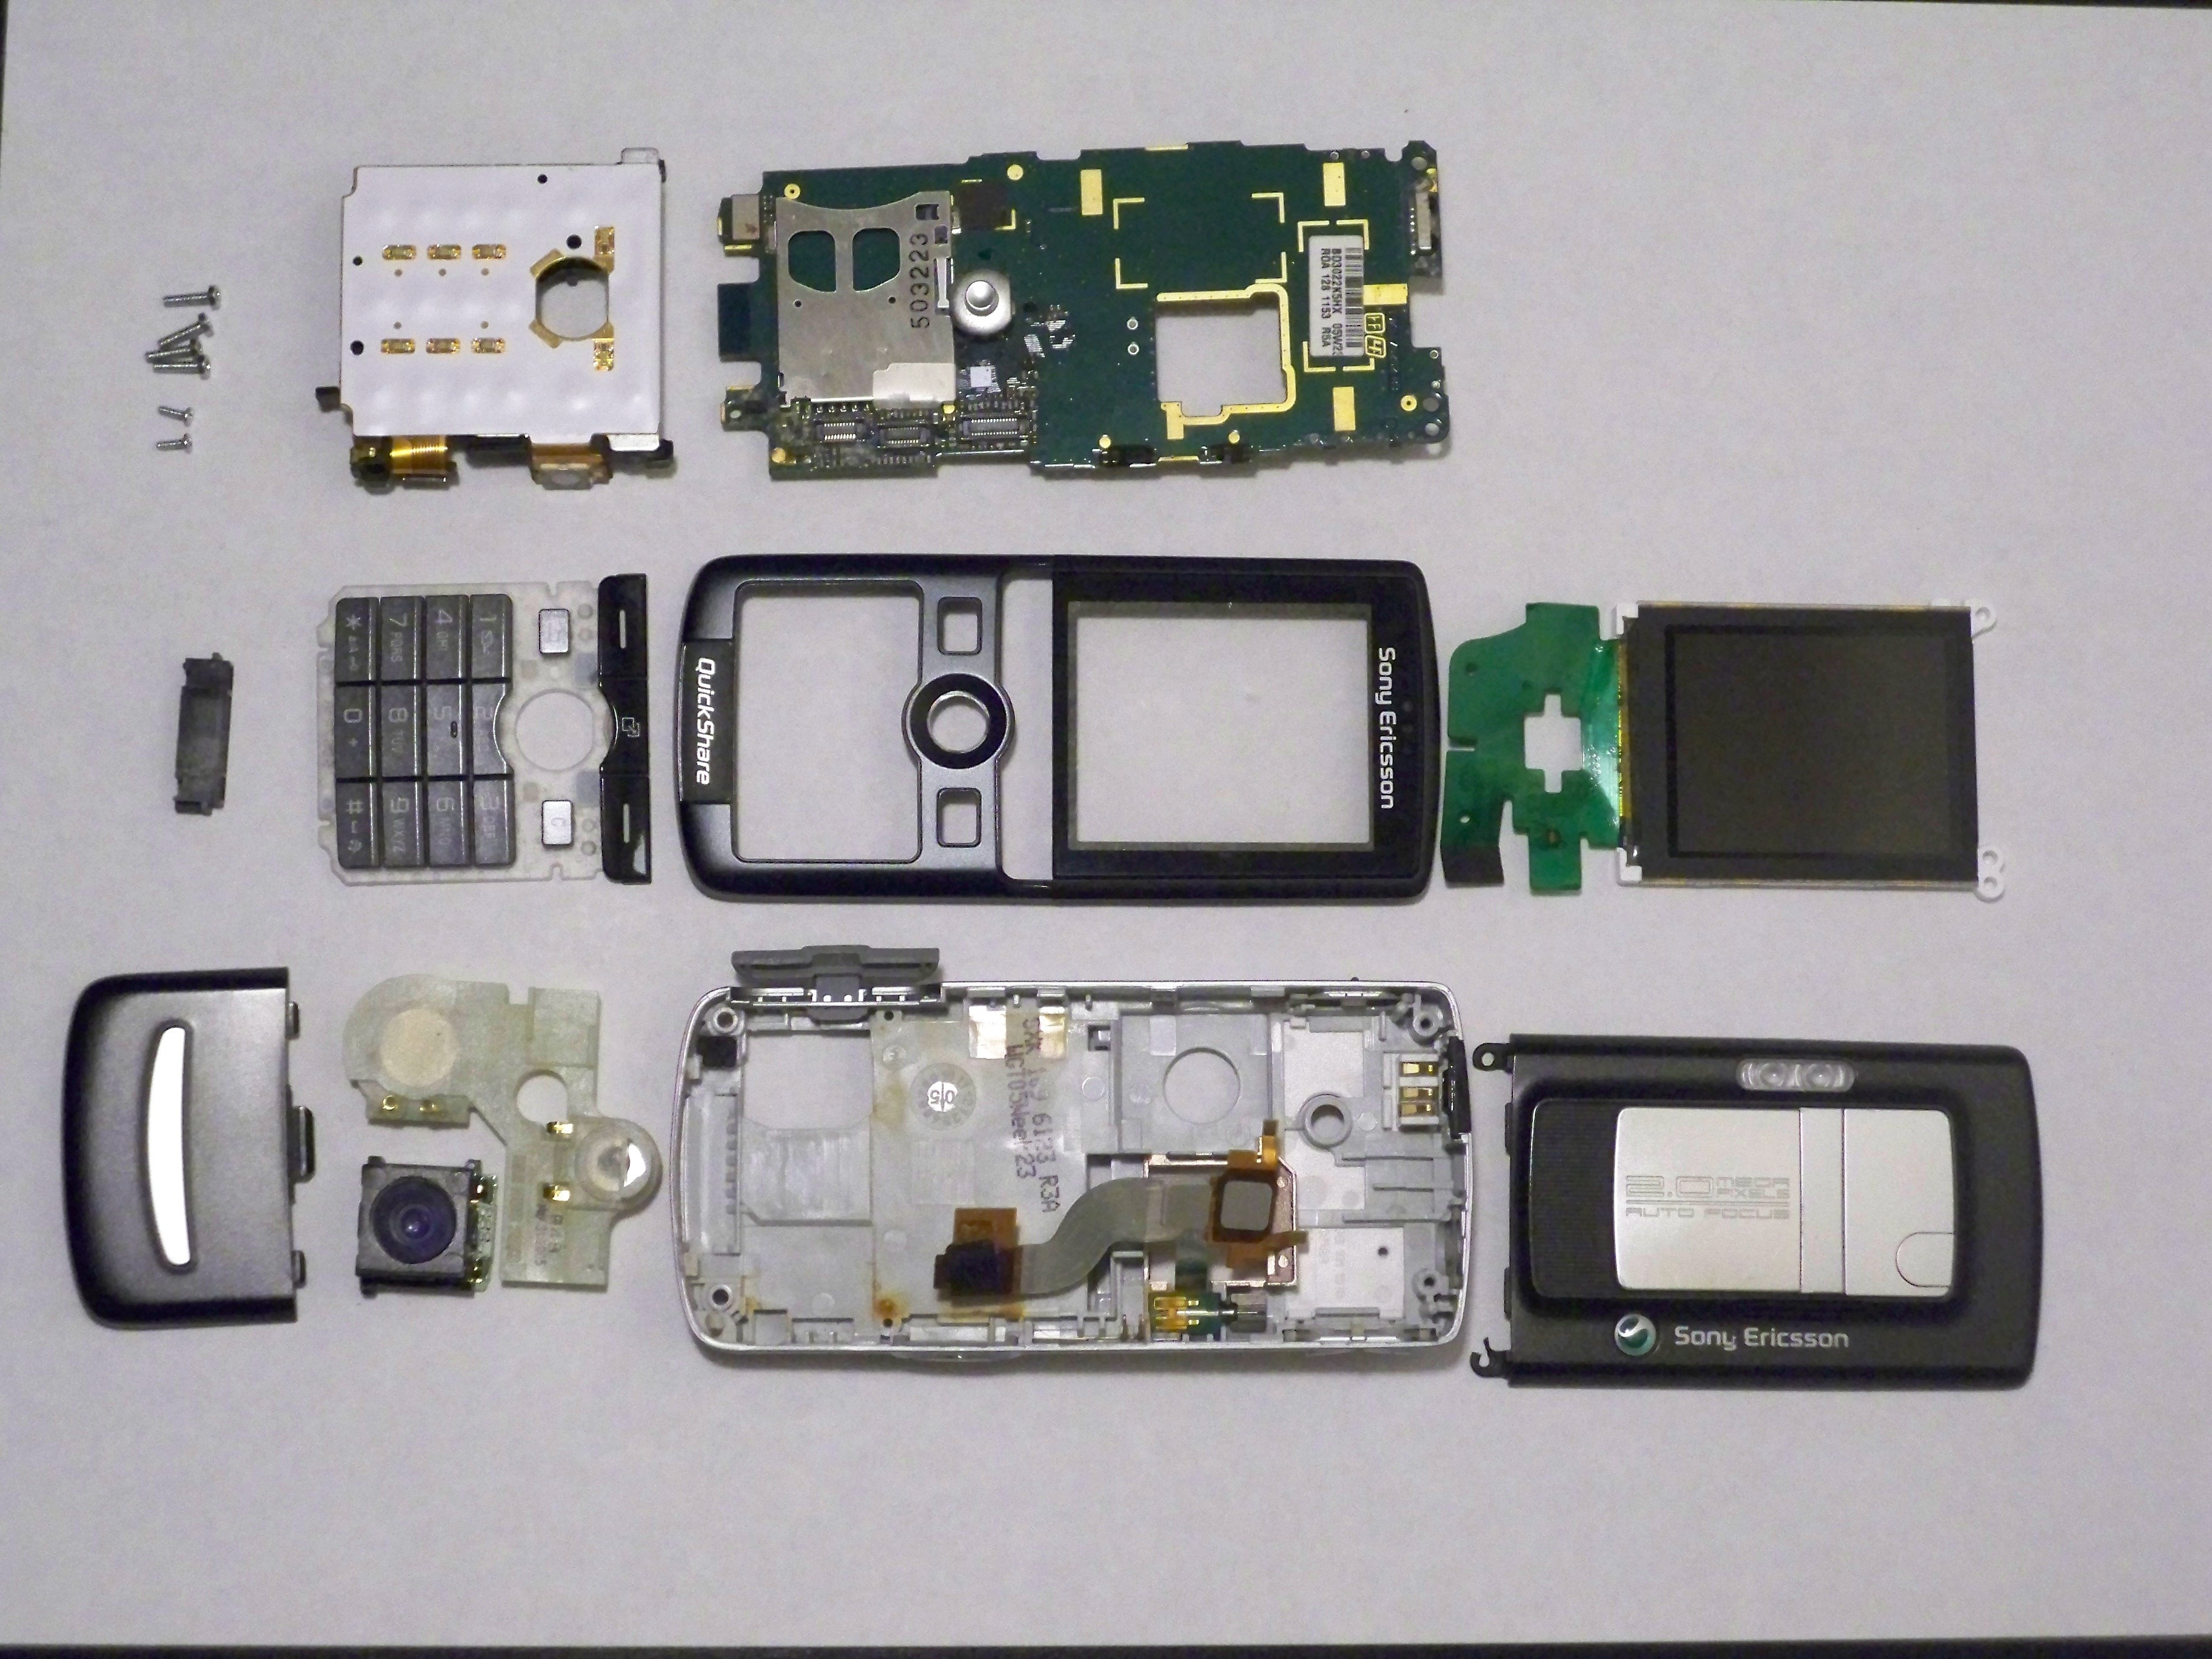 sony ericsson k750i teardown ifixit. Black Bedroom Furniture Sets. Home Design Ideas